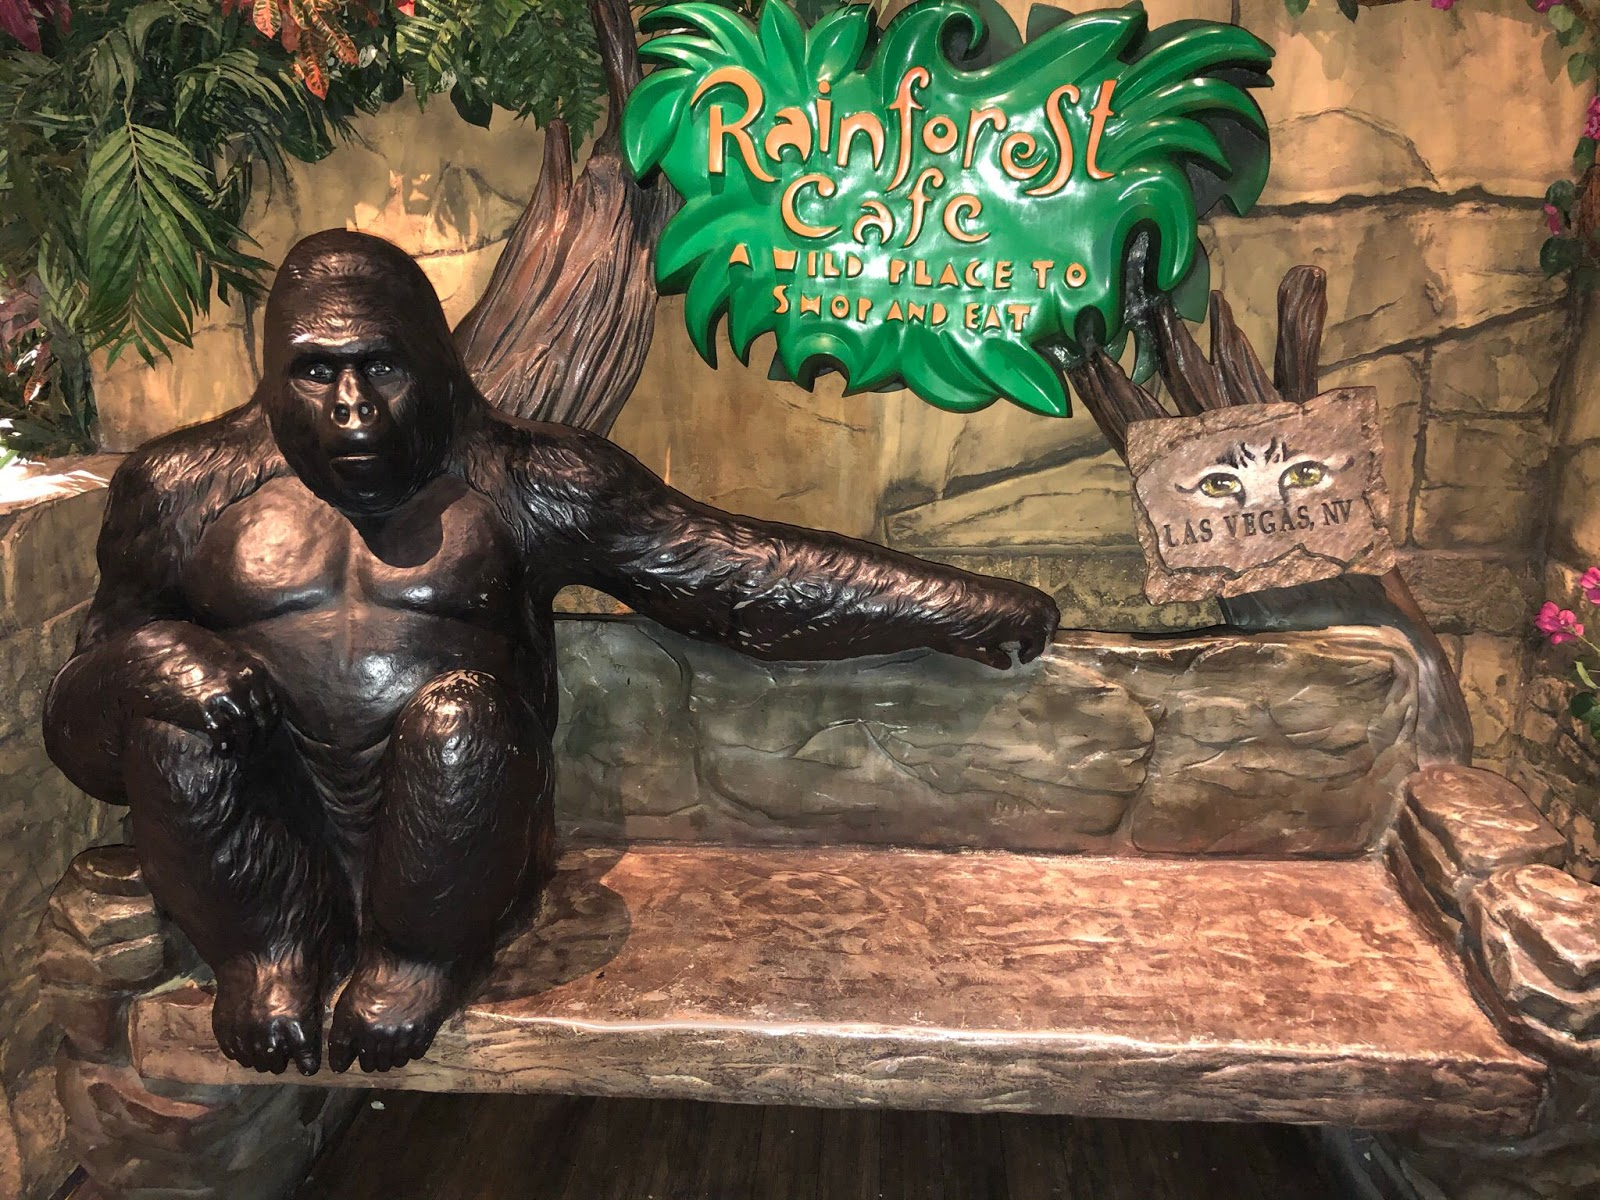 """The entrance to Rainforest Cafe features a large brown bench that gives the impression that it's cut from wood. A large black gorilla sits to the left on the bench with his left arm draped across the back of the bench, inviting guests to sit next to him. Behind the bench, there is a bright green sign that reads """"Rainforest Cafe: A Wild Place to Shop and Eat"""" in yellow writing. To the right of the green sign, there is a smaller brown sign that says Las Vegas, Nevada. A pair of mysterious cat eyes sit just above the city name."""